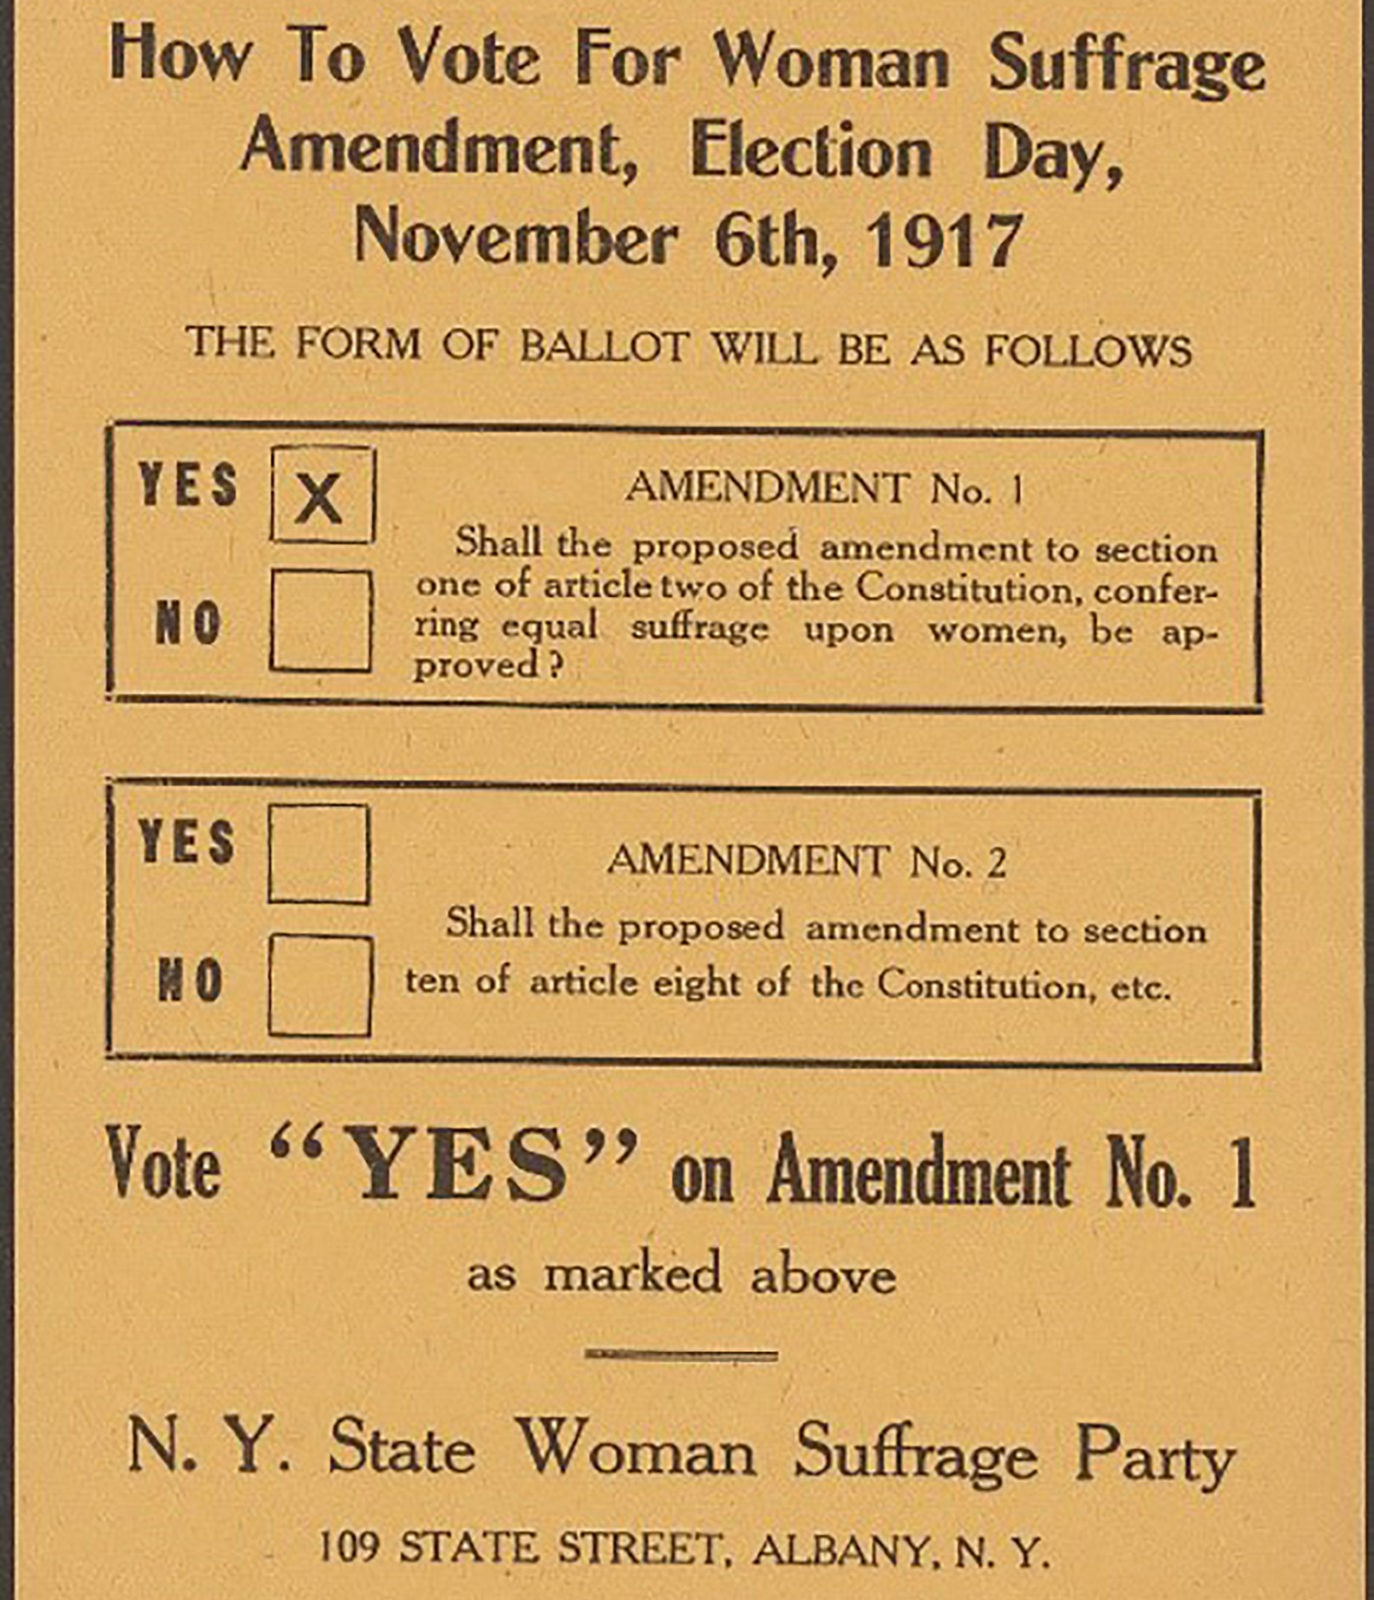 New York State Women's Suffrage party flyer for 1917.